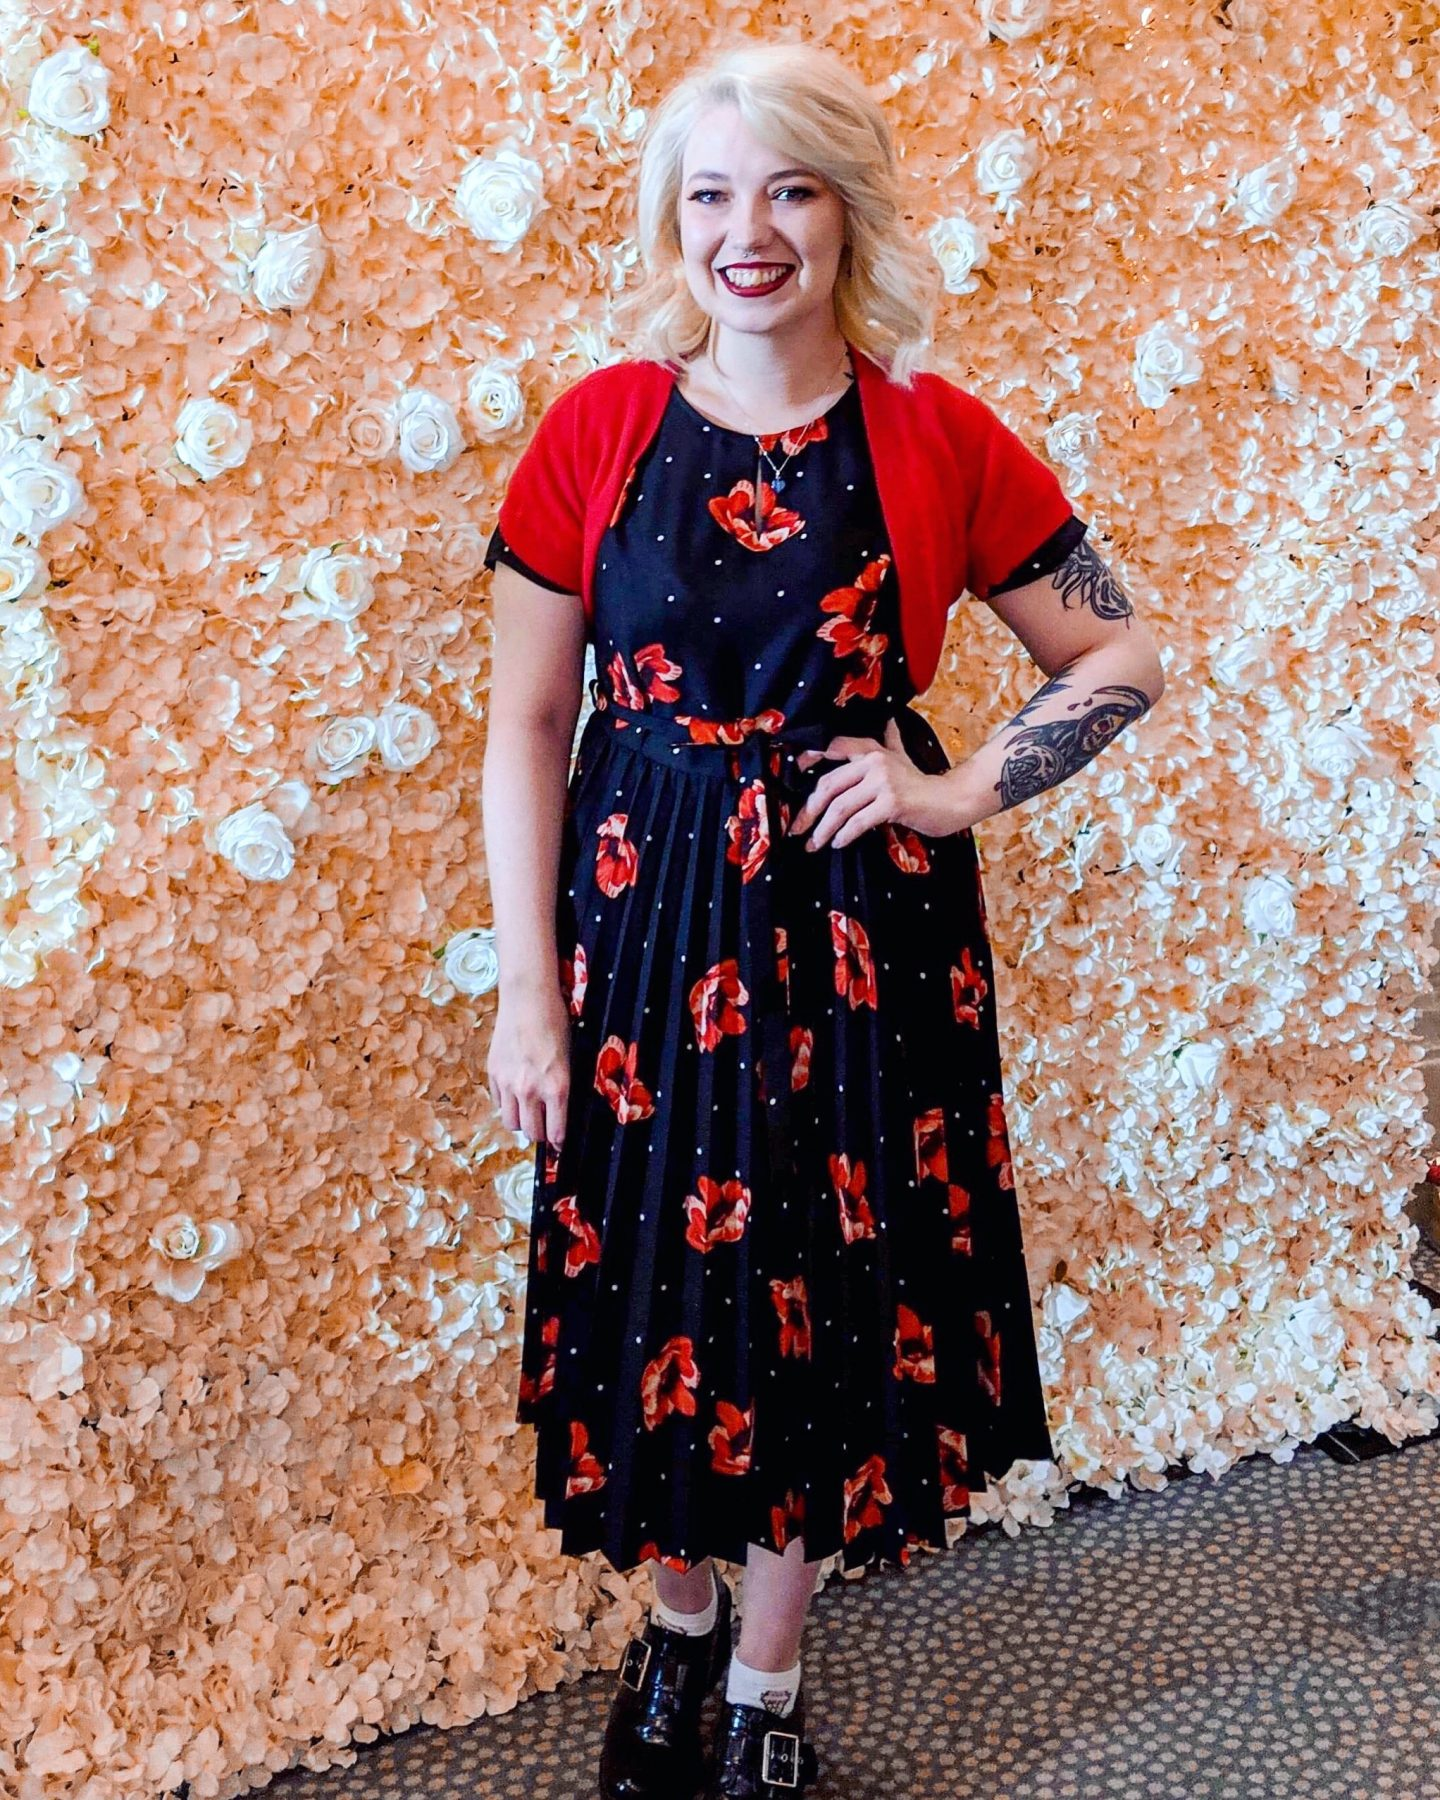 Blonde girl in black and red floral dress at first blogging event